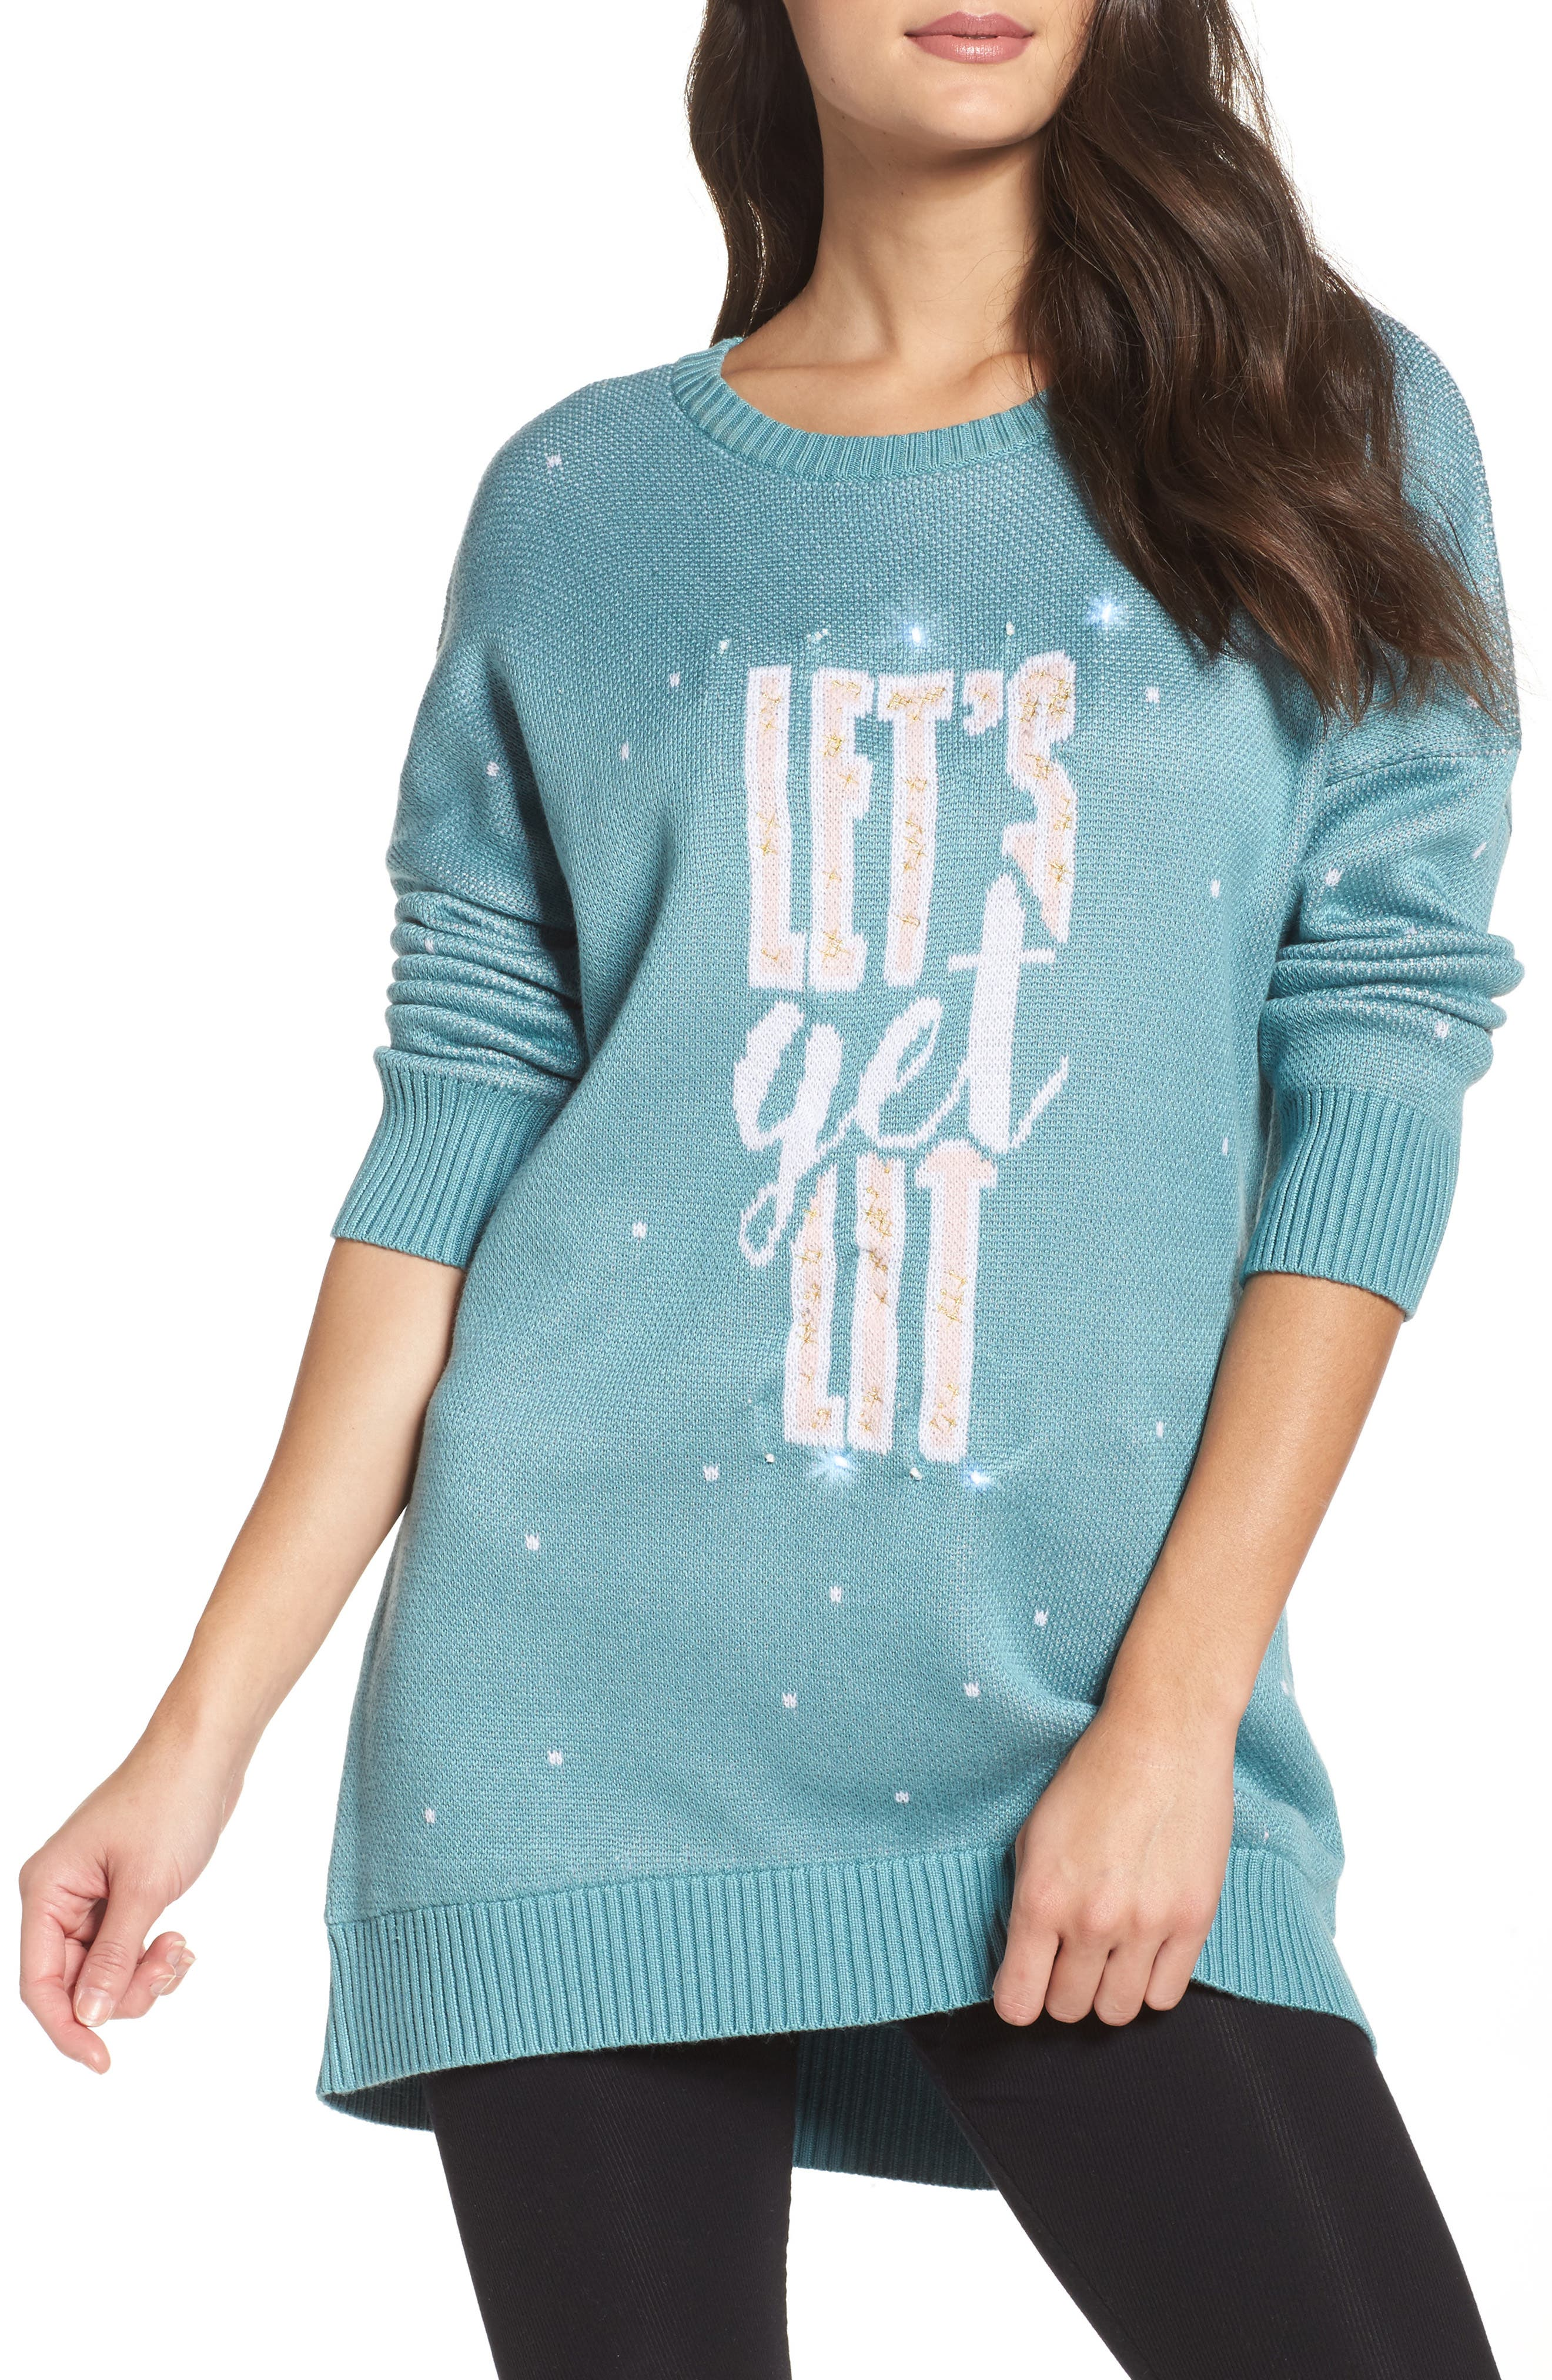 Honeydew LED Light-Up Sweater